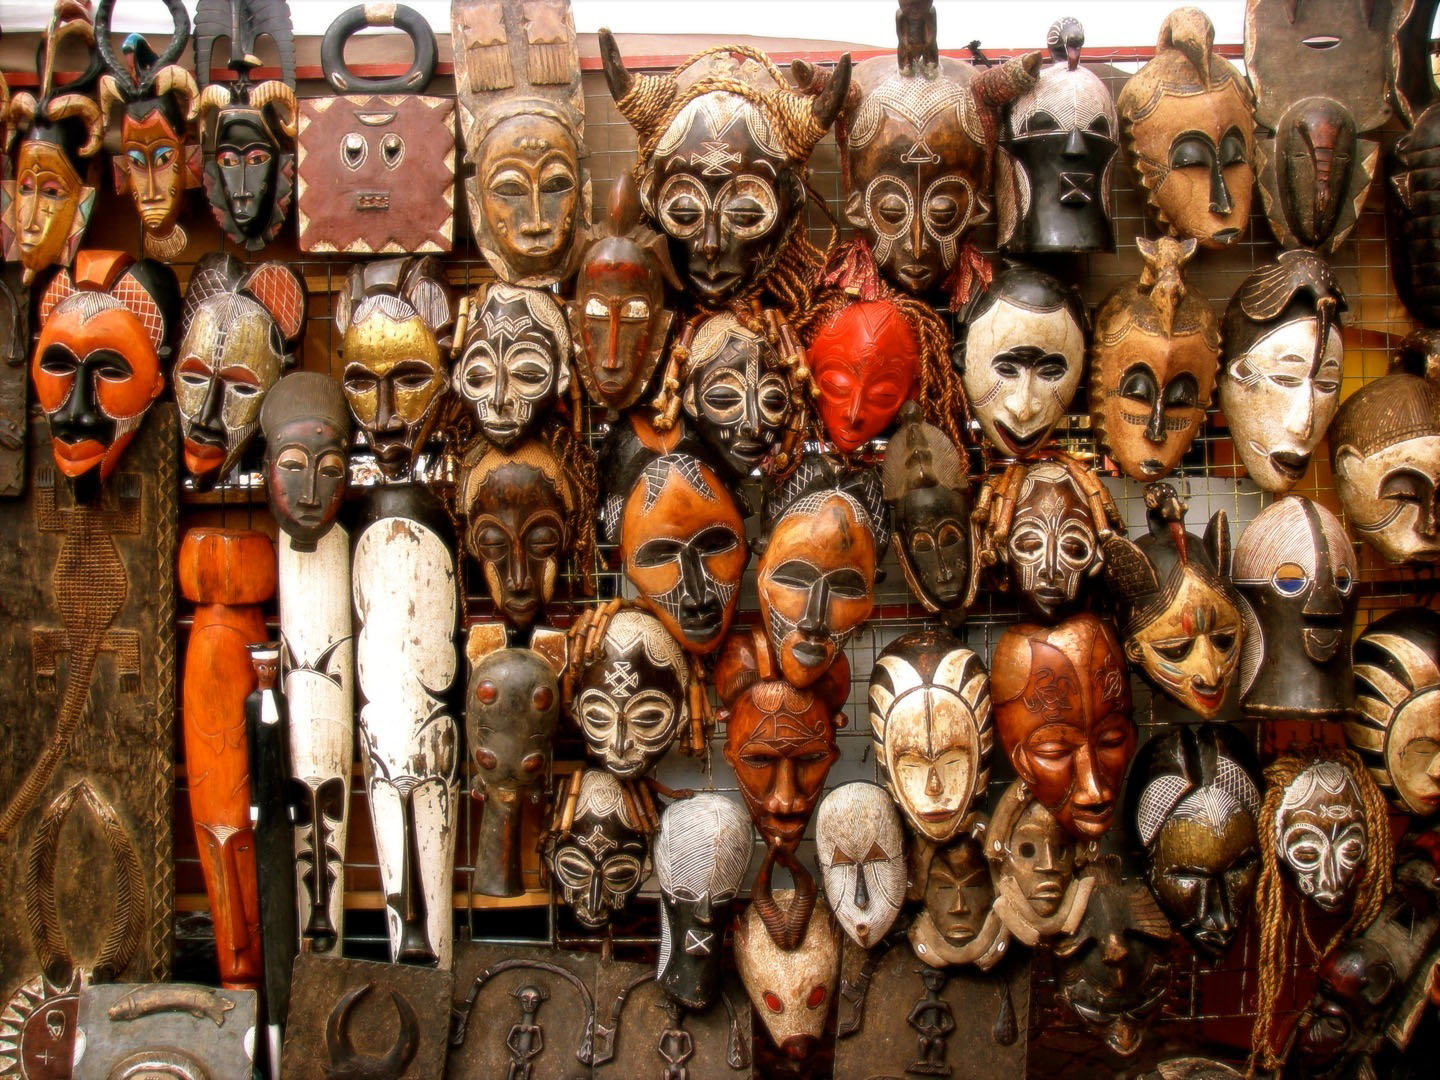 Around The World in Masks